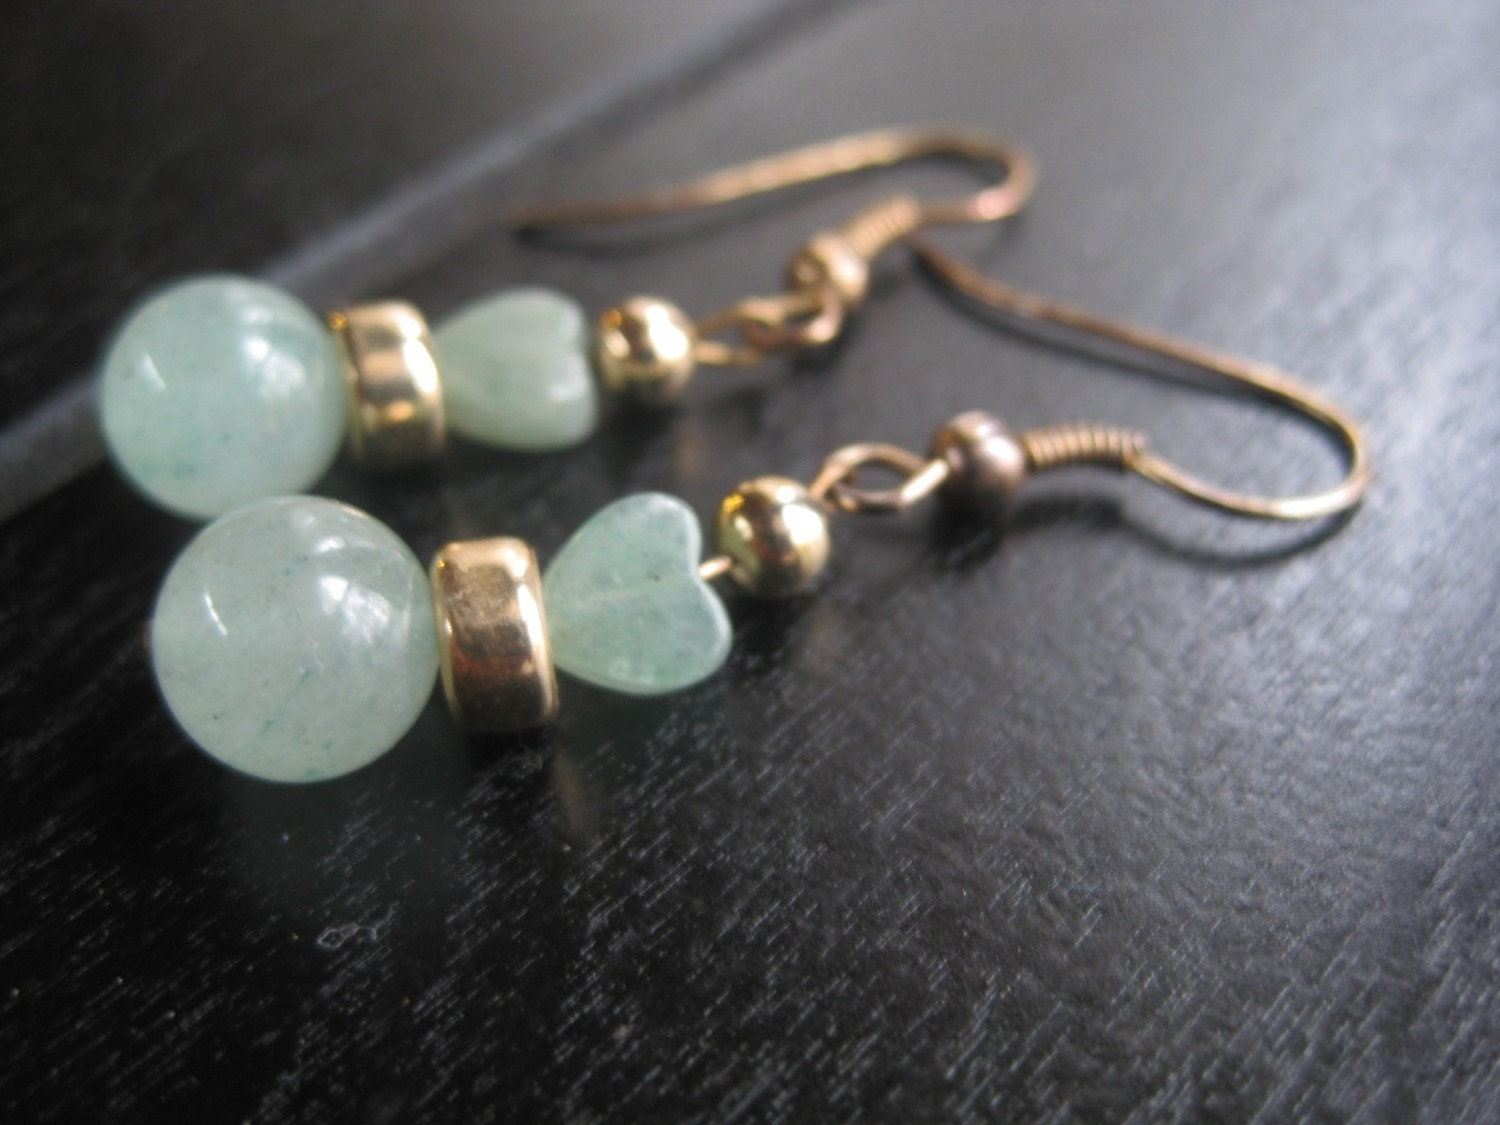 Cute Jade Earrings with Hearts and Gold Tone FREE Priority SHIPPING w Tracking